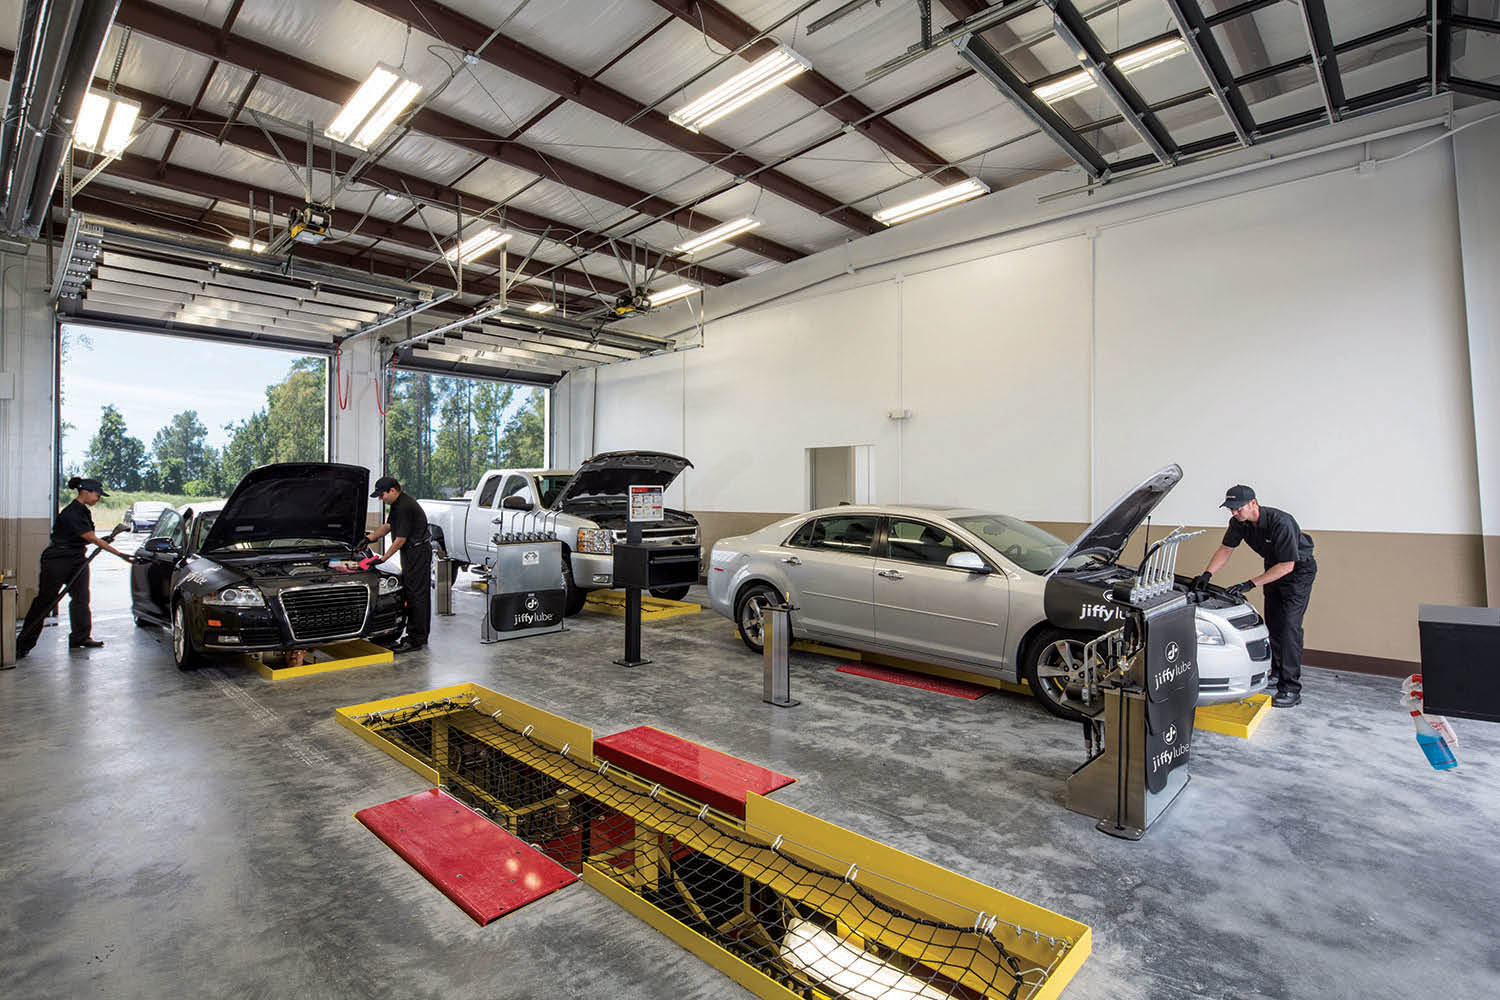 Jiffy Lube offers complete auto repair services at our LA location